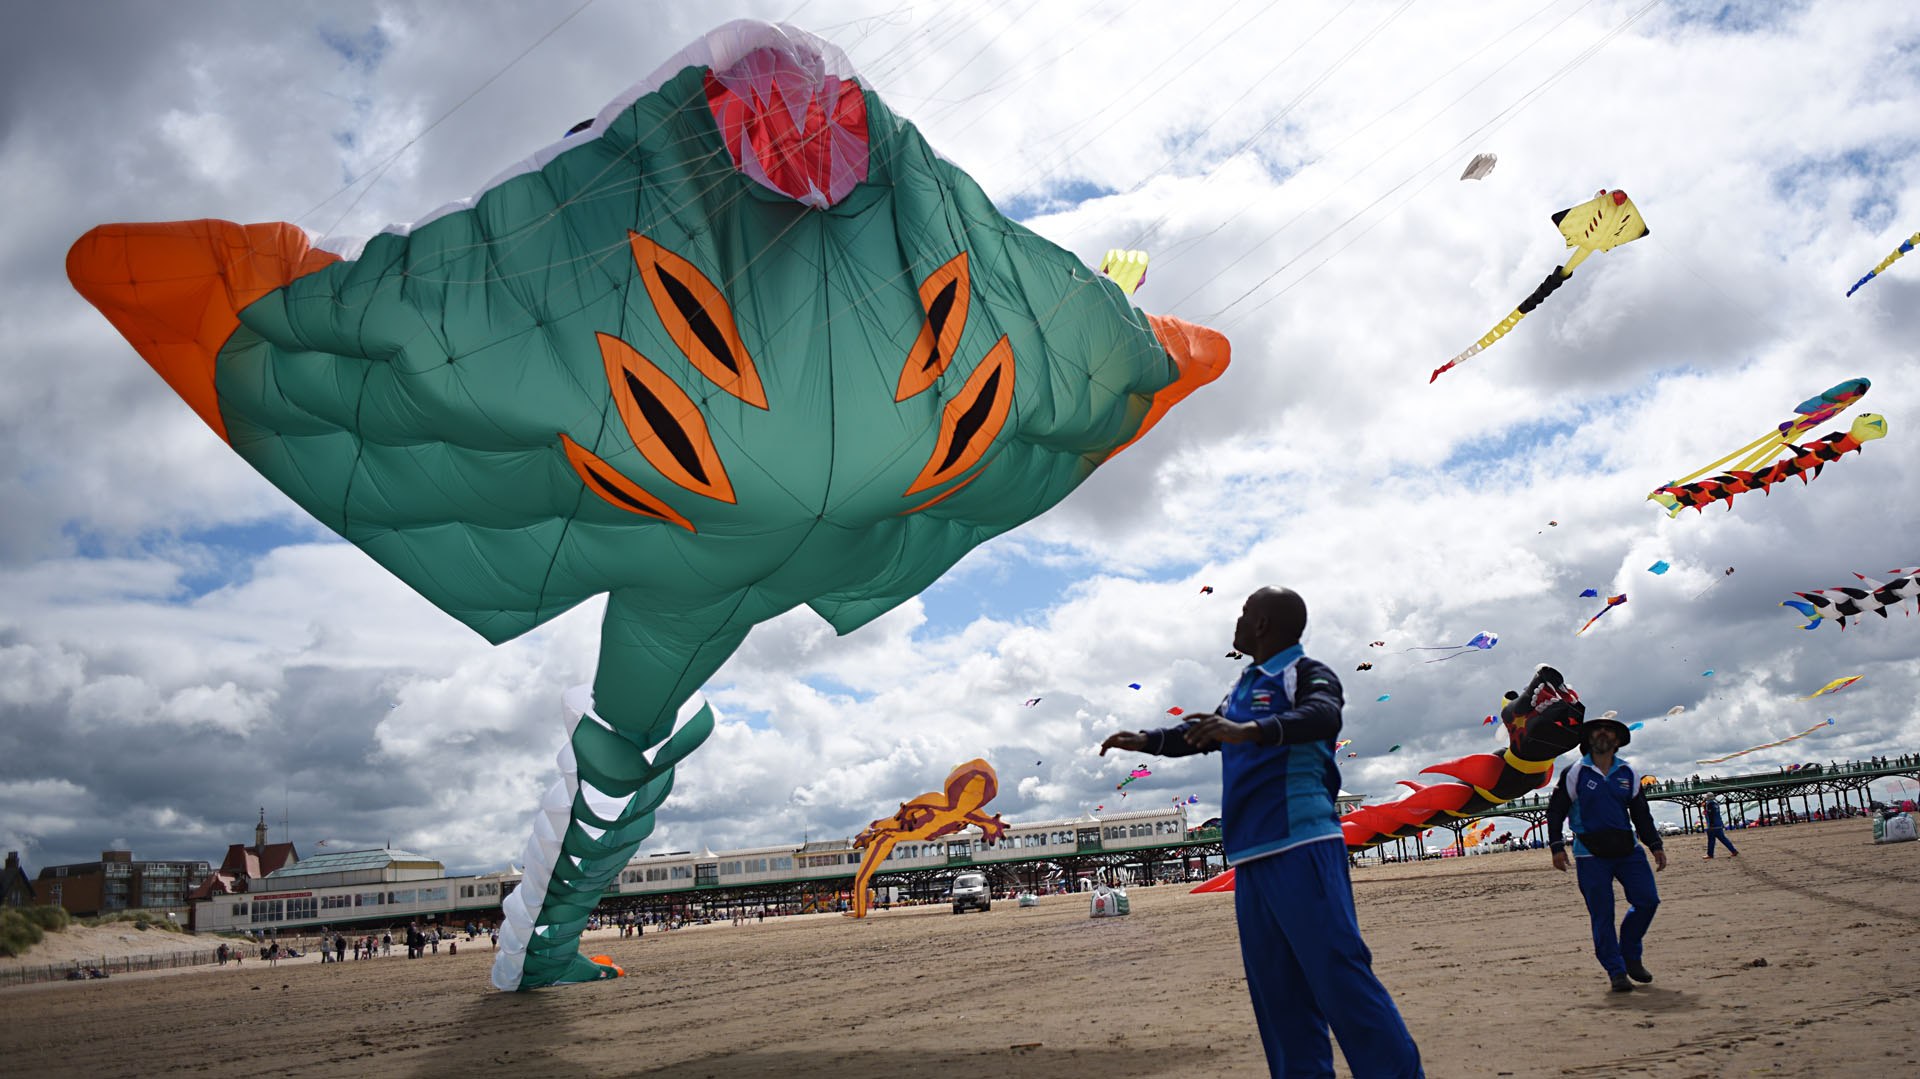 Members of the Kuwaiti Al Farsi Kite Team send up a kite as they participate in the St Annes Kite Festival on the seafront in Lytham St Annes, north west England on July 30, 2016. / AFP PHOTO / OLI SCARFF